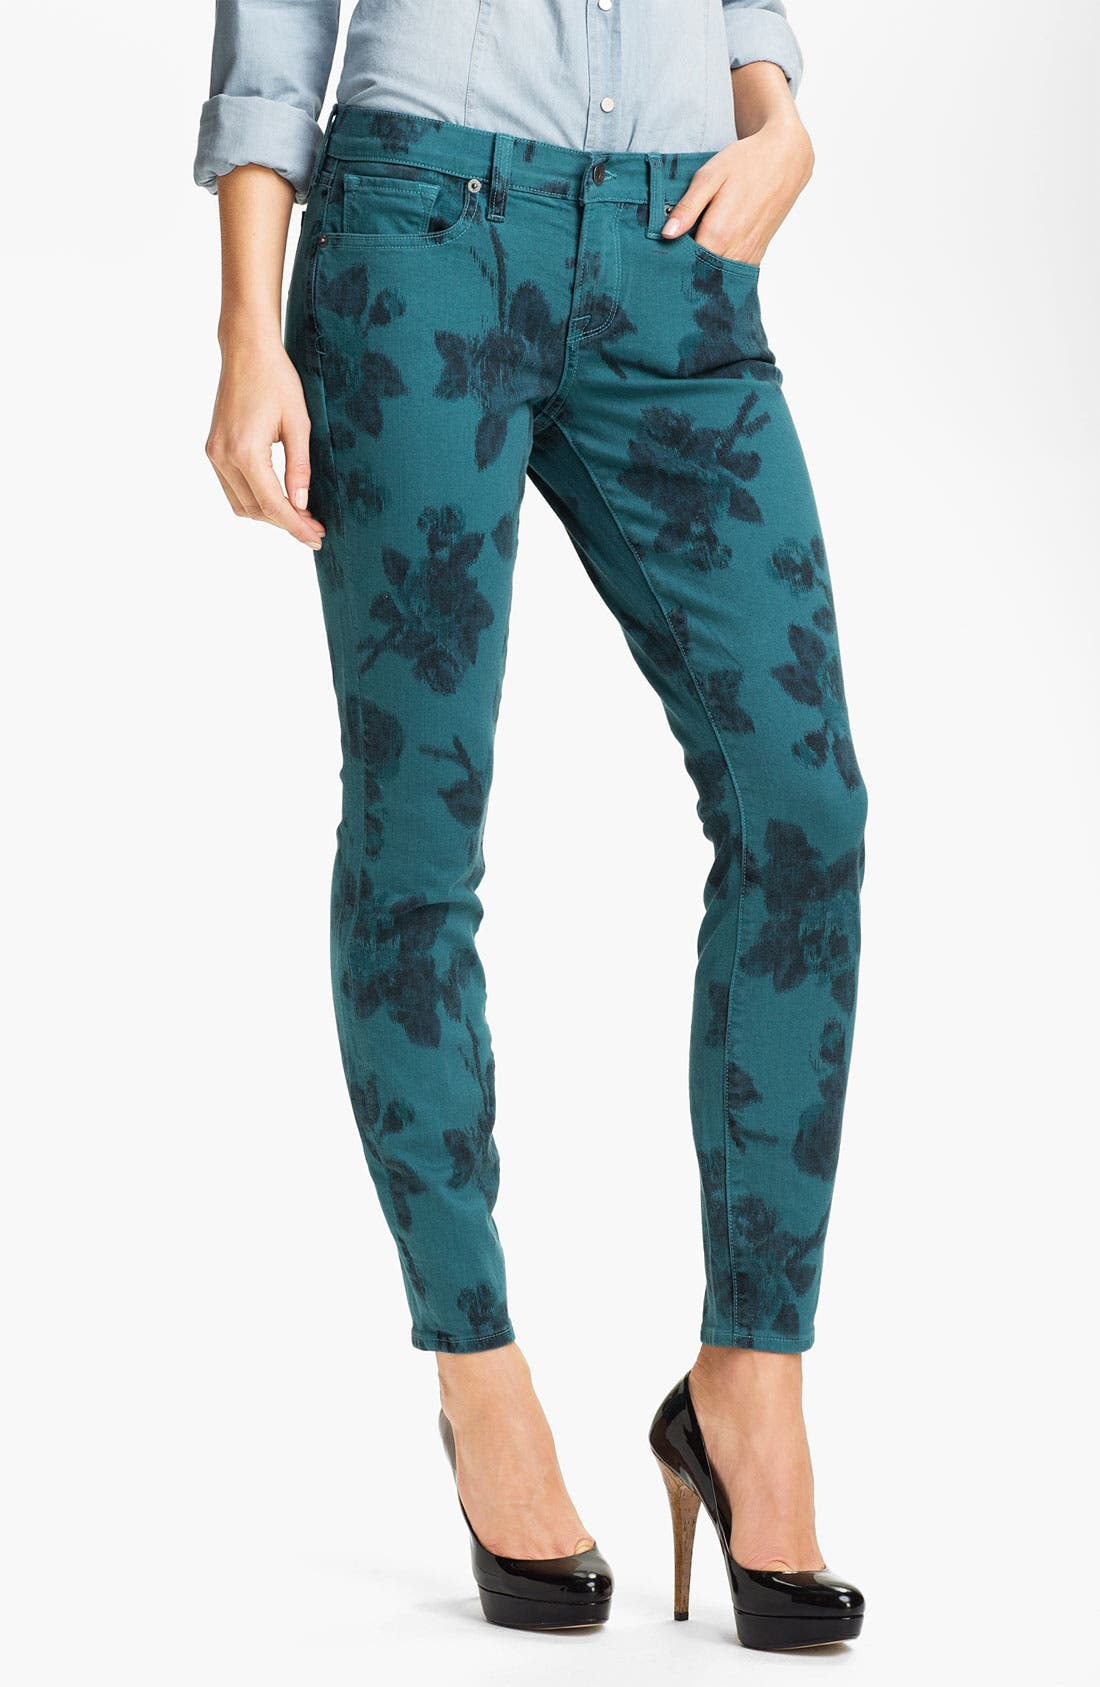 Main Image - Lucky Brand 'Charlie' Ikat Print Skinny Jeans (Online Exclusive)